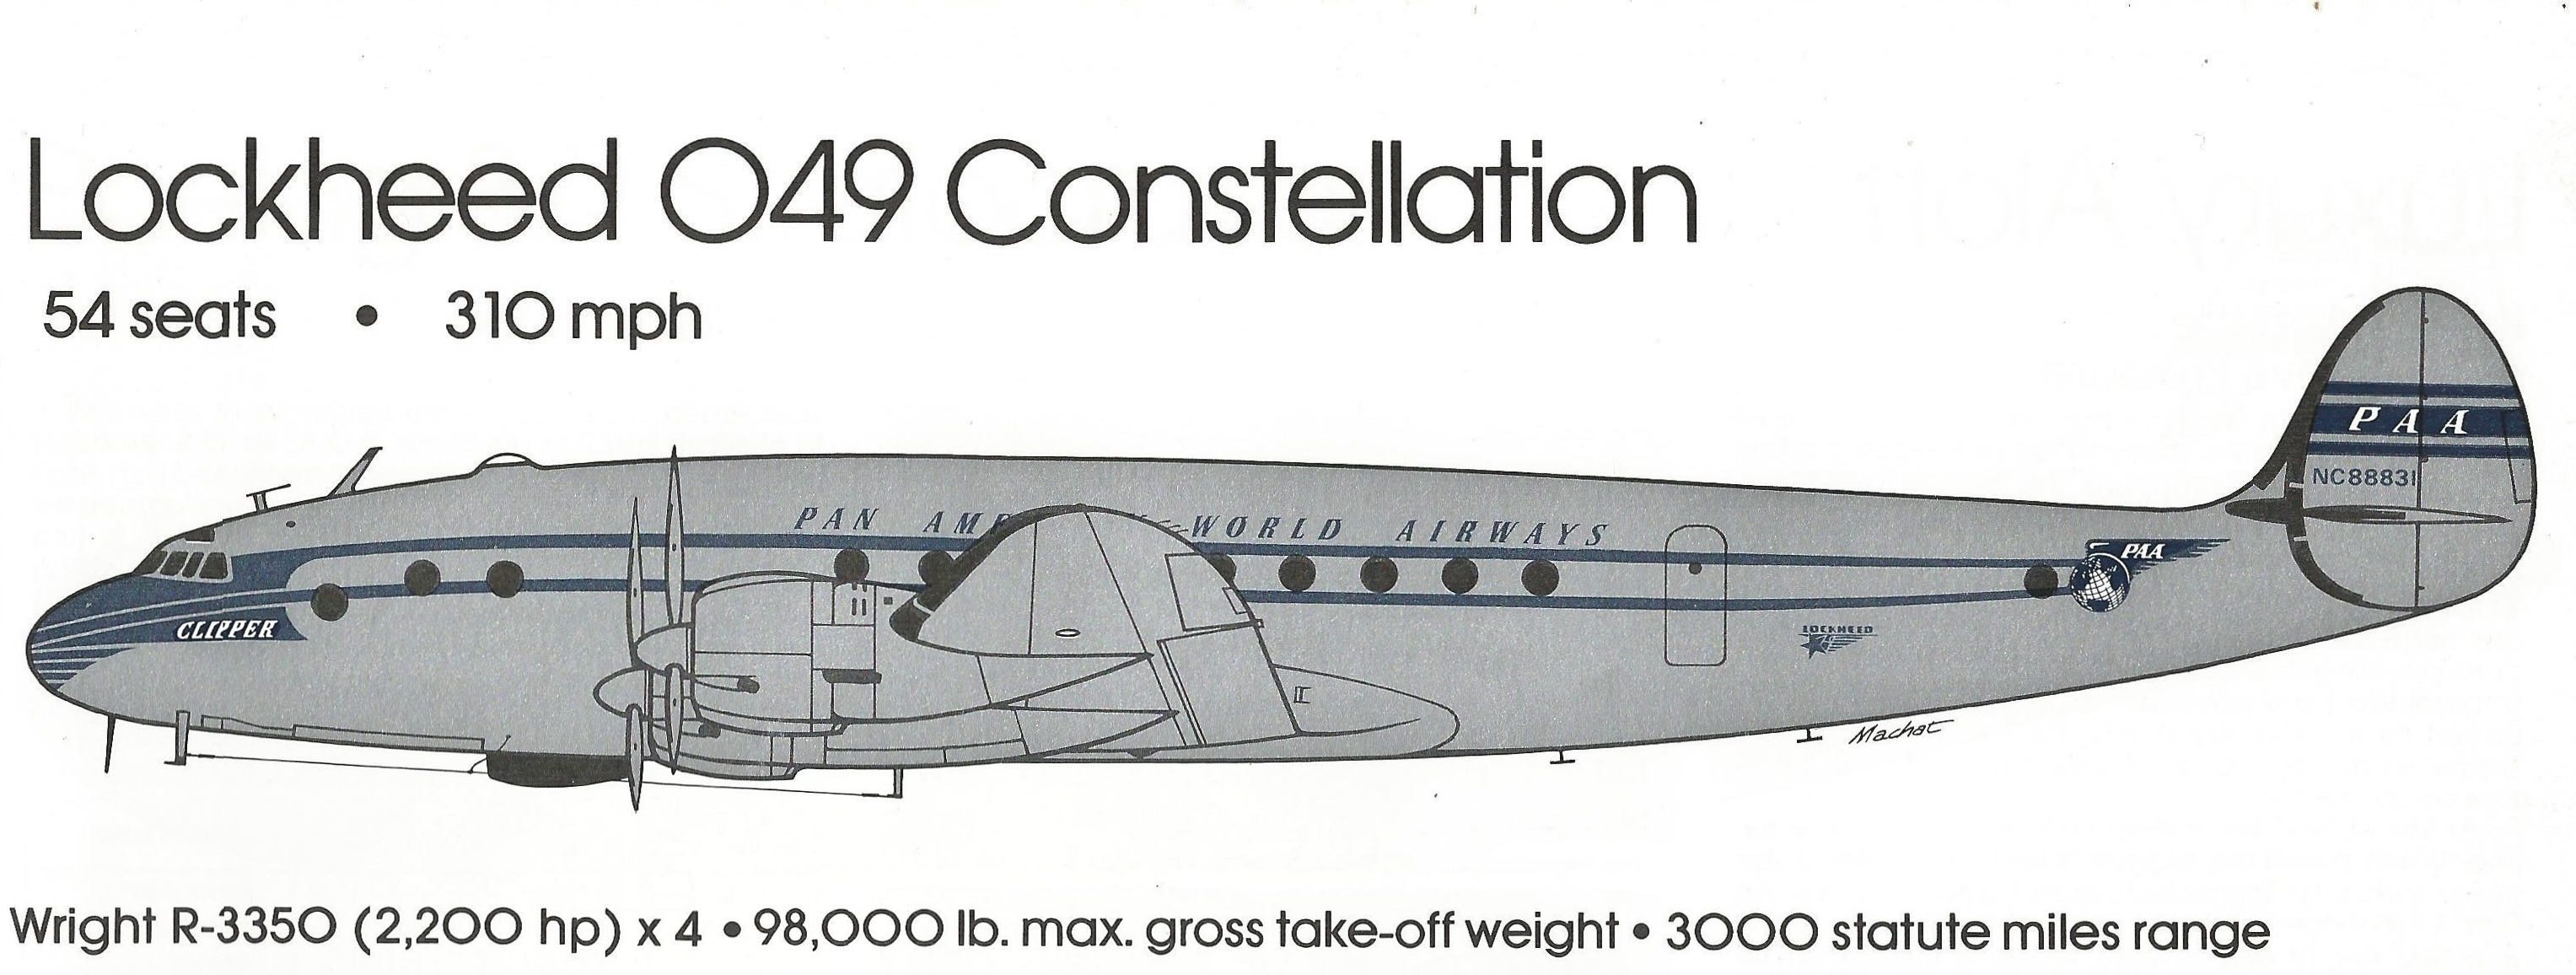 Lockheed 049 Constellation (Illustration by Mike Machat  in Ron Davies' Pan Am - An Airline and Its Aircraft)